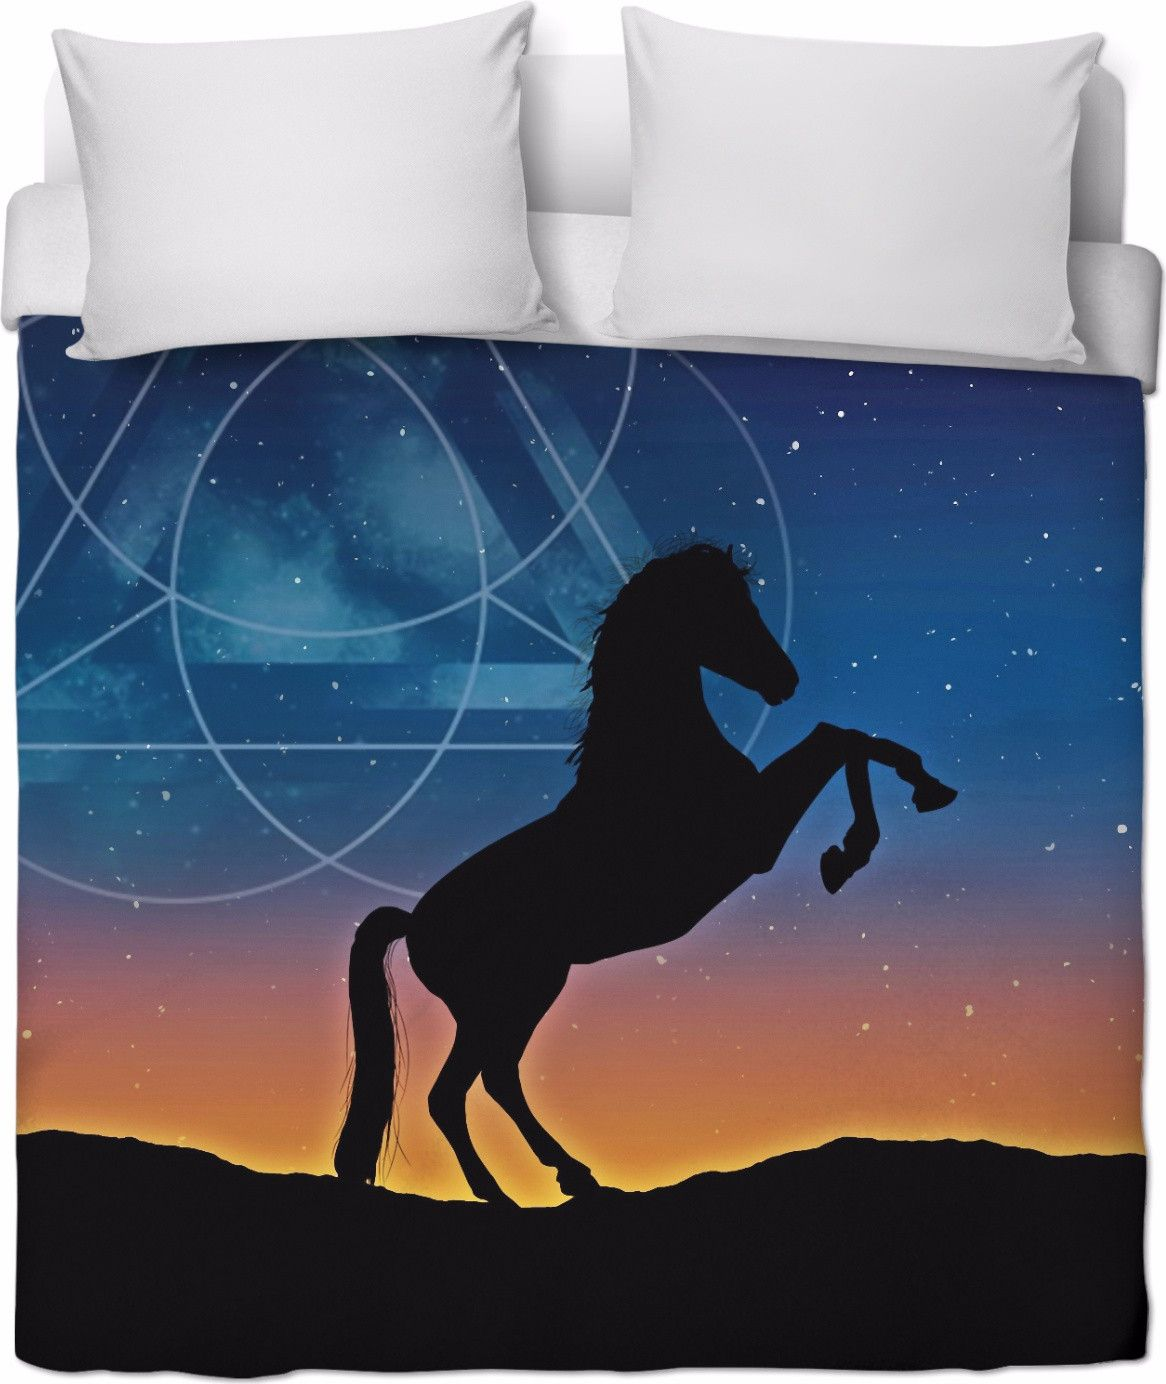 Rearing Horse Silhouette Against Stars And Symbol Symbols